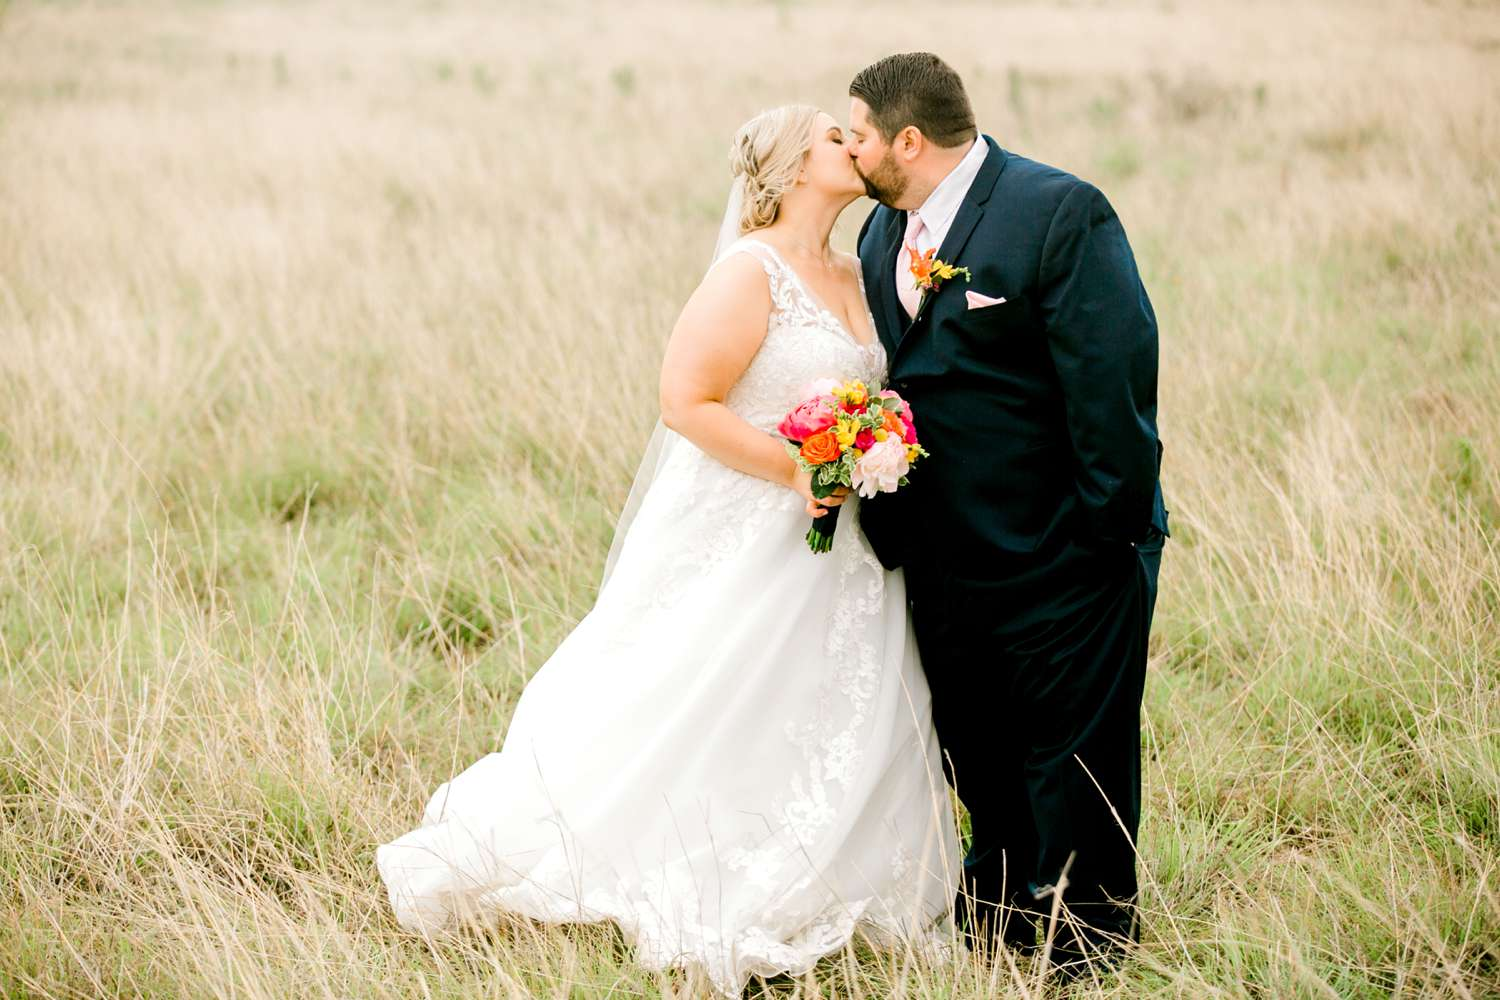 TIMMI+JORDAN_IRVINE_EBERLEY_BROOKS_EVENTS_ALLEEJ_WEDDINGS_0085.jpg